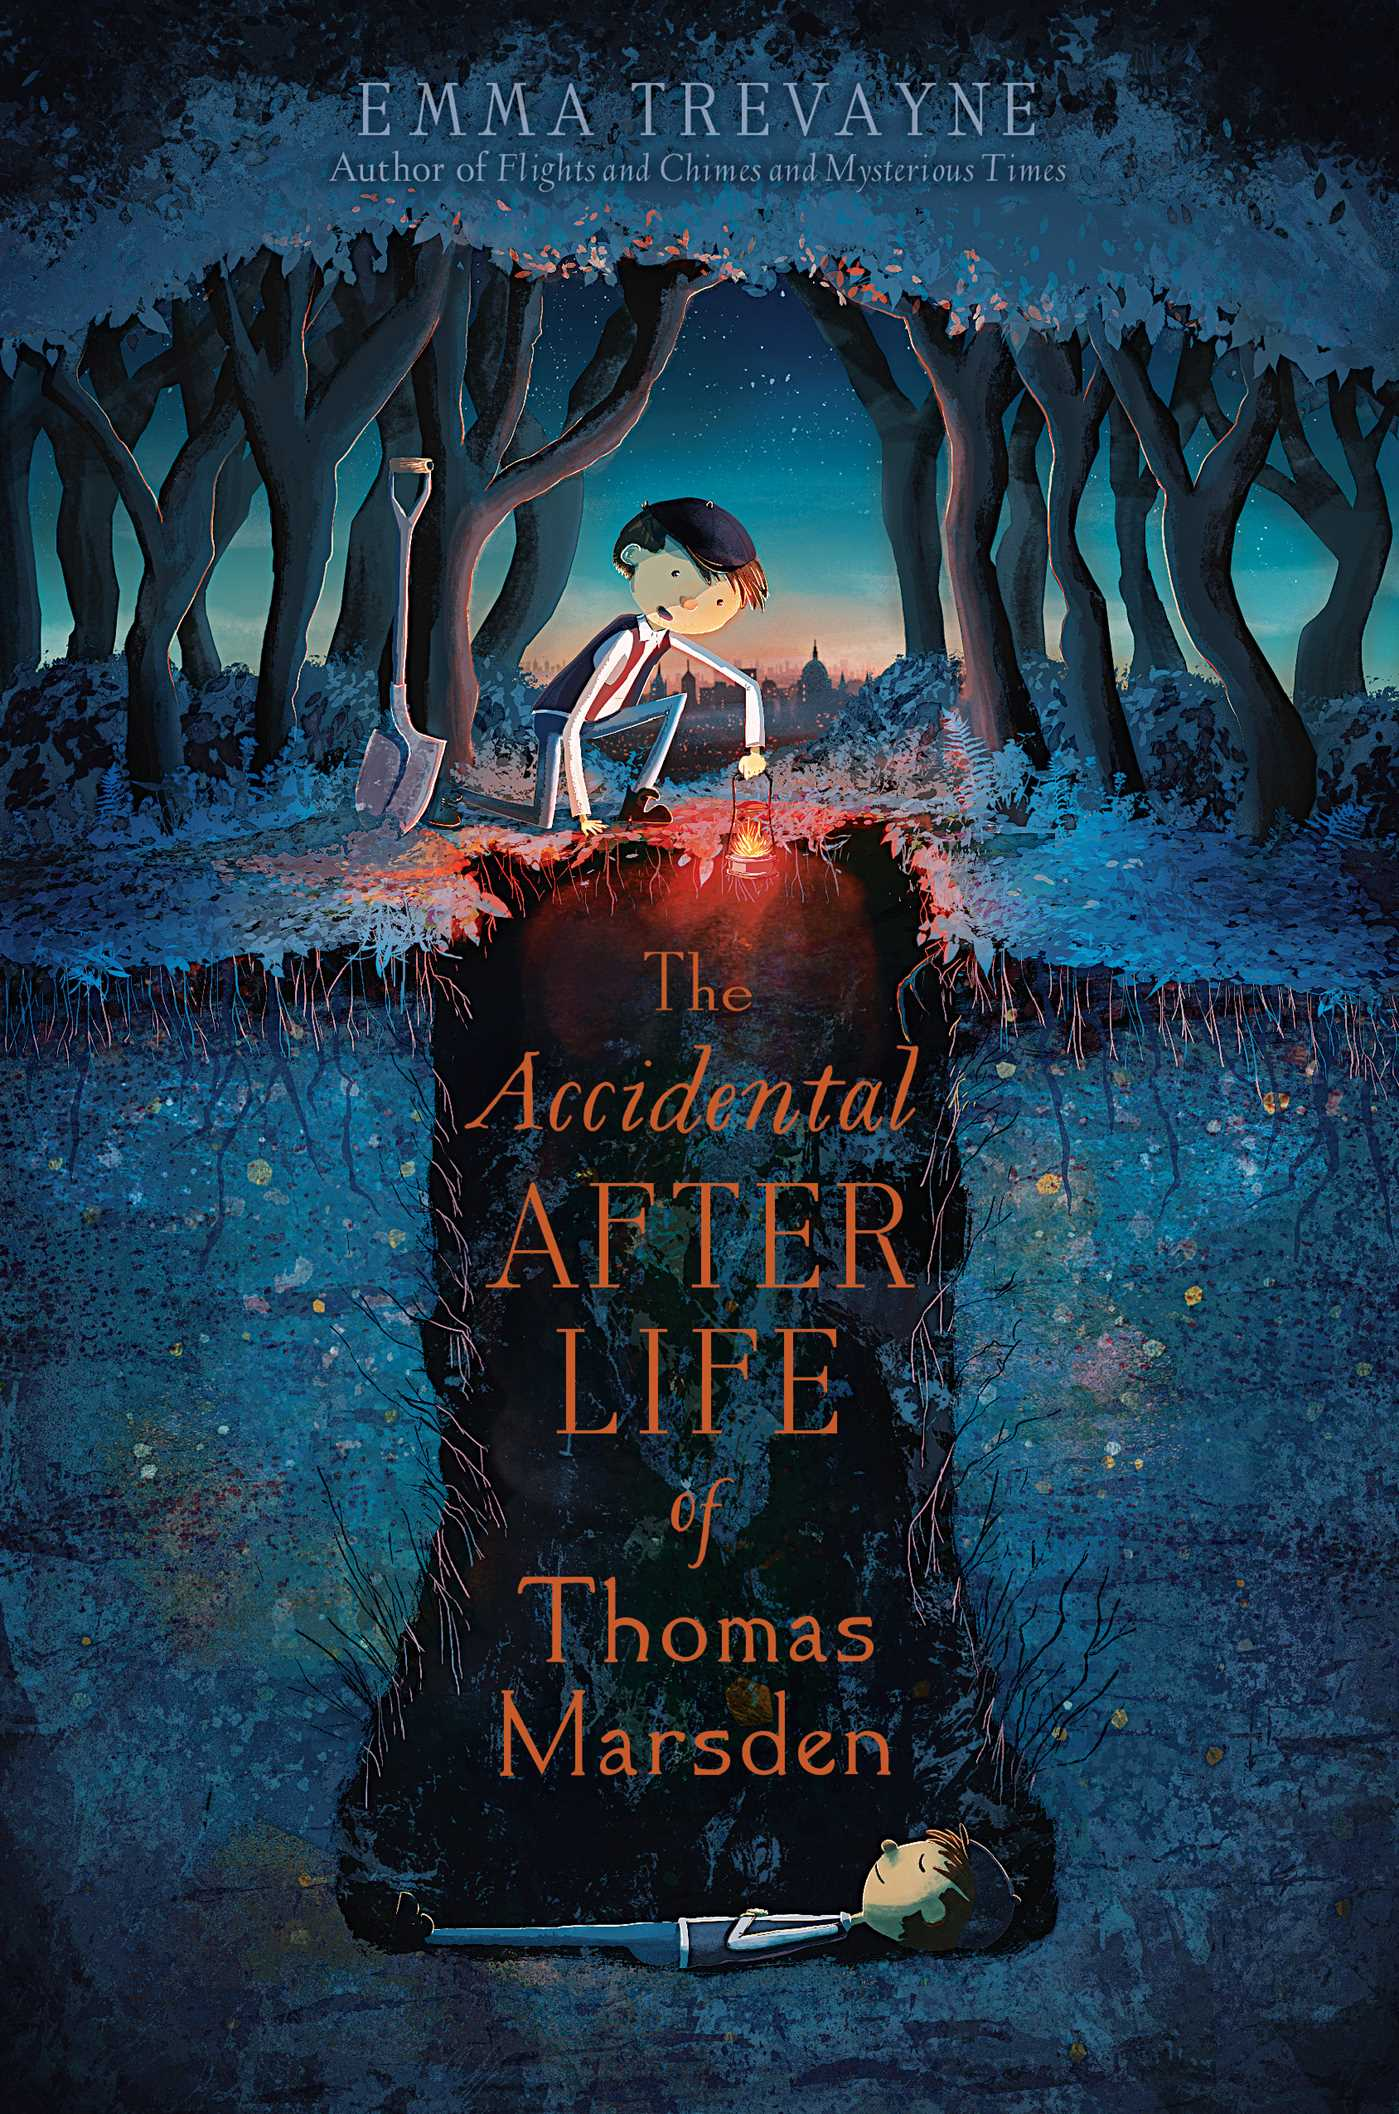 Accidental-afterlife-of-thomas-marsden-9781442498822_hr